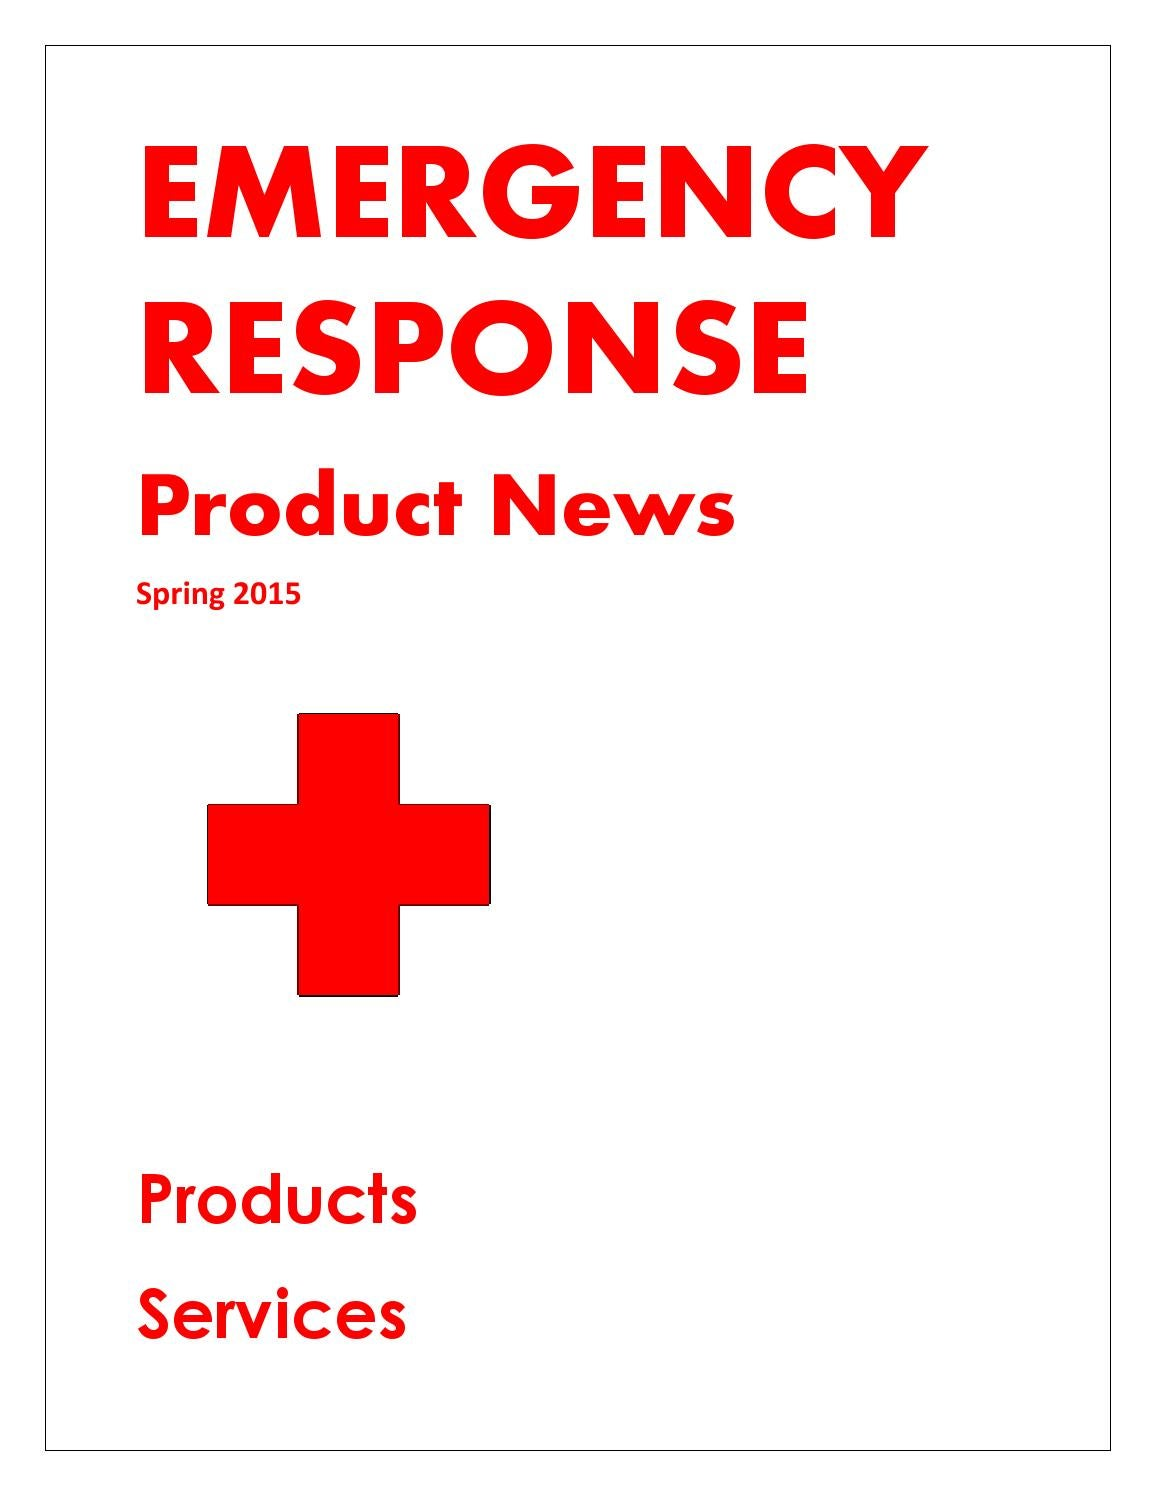 Emergency Response By Federal Buyers Guide Inc Issuu Block Diagram Led Lighting Sbd Ticom